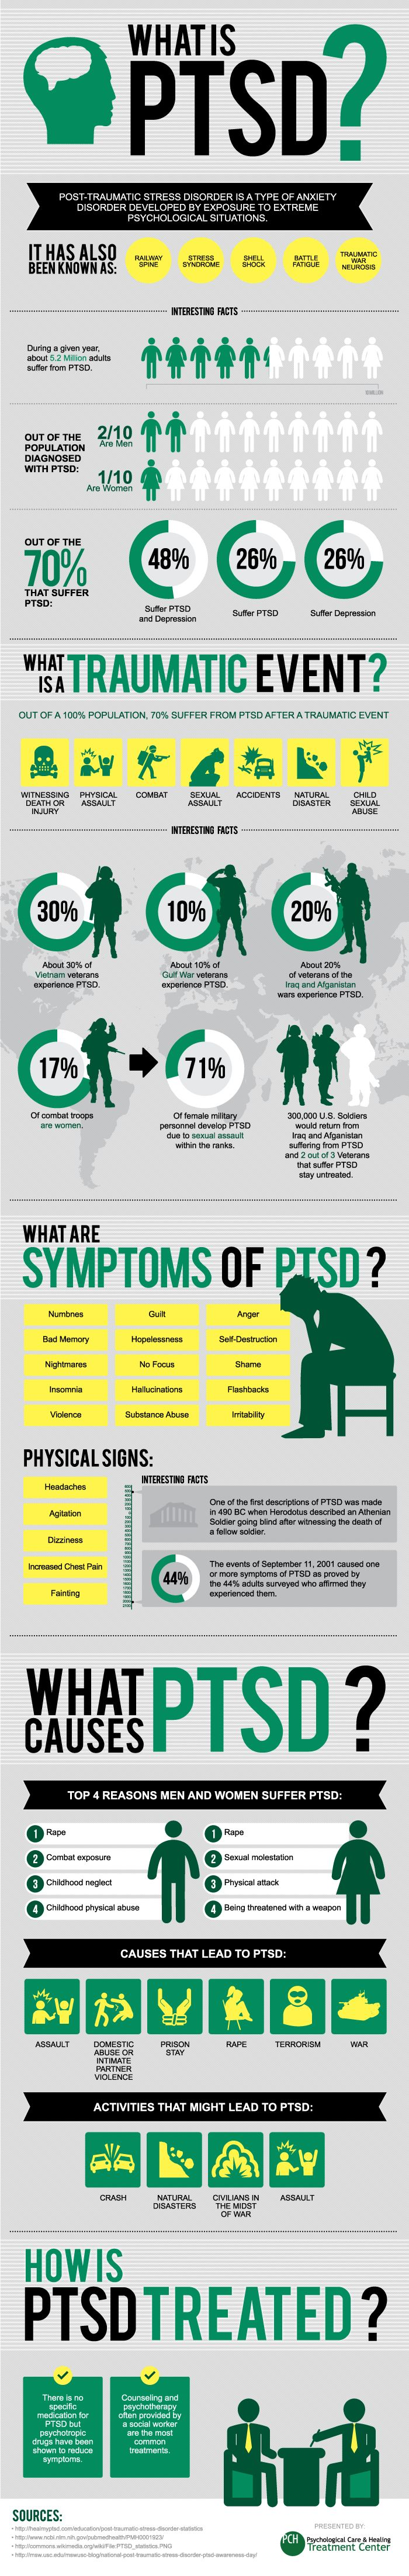 Spread and Share - PTSD Awareness. It can affect many people not just Veterans and Law Enforcement. Their is a lot of help for those who survive.